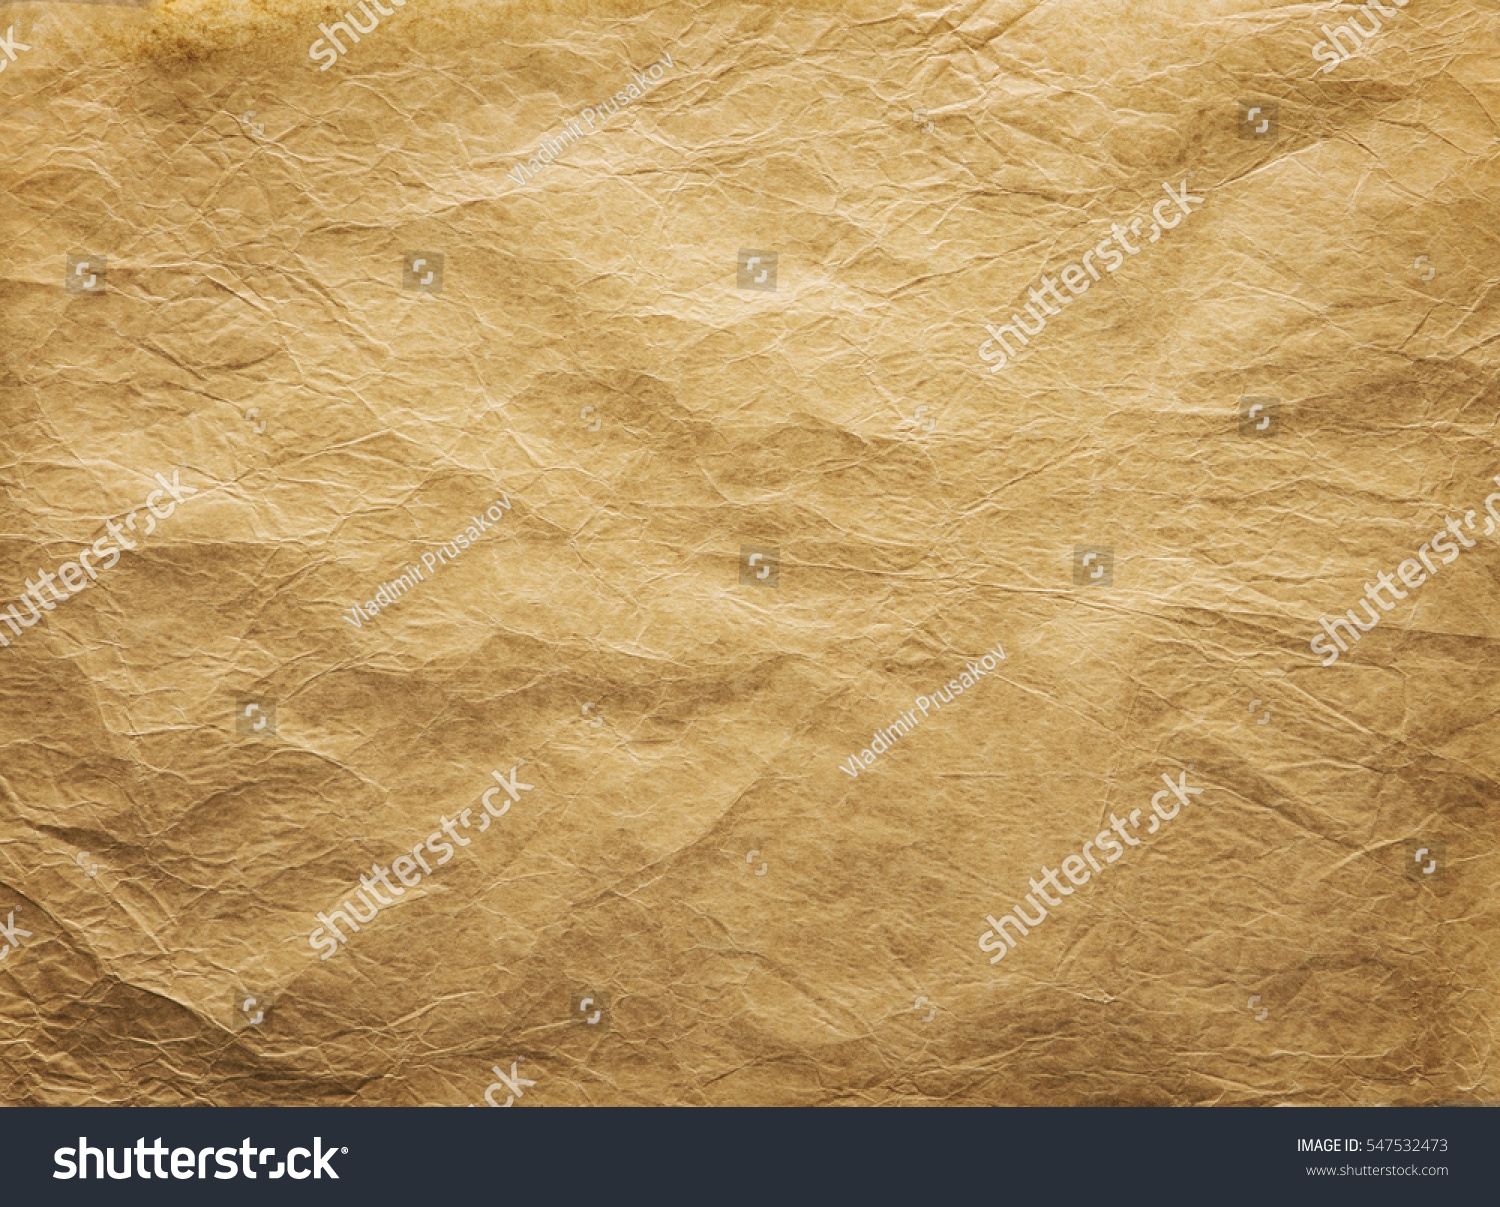 2a1bd9c632d5 Old Wrinkled Paper Background Papers Folds Stock Photo (Edit Now ...